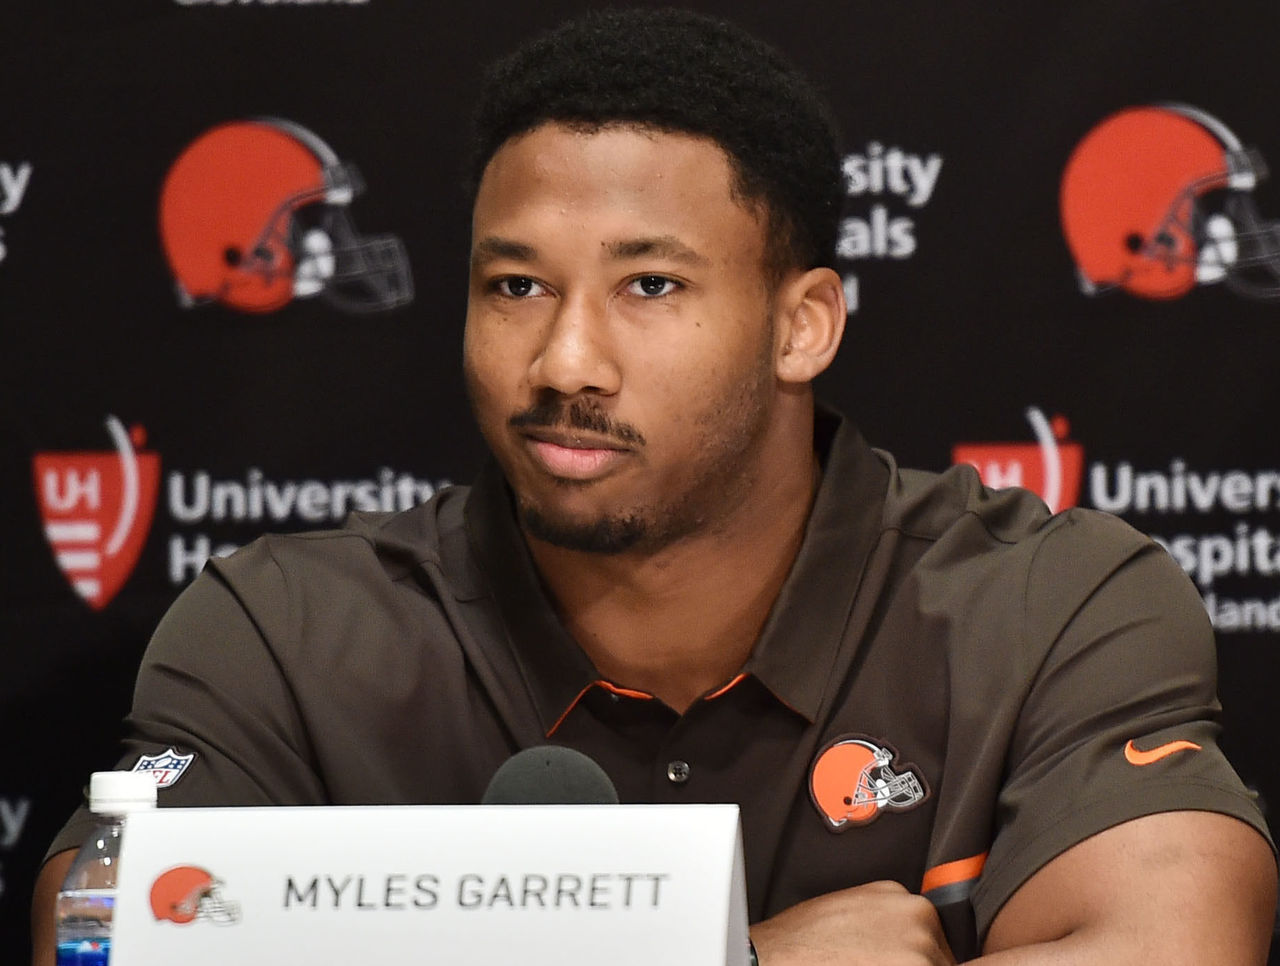 Cropped_2017-04-28t204036z_572065477_nocid_rtrmadp_3_nfl-cleveland-browns-press-conference